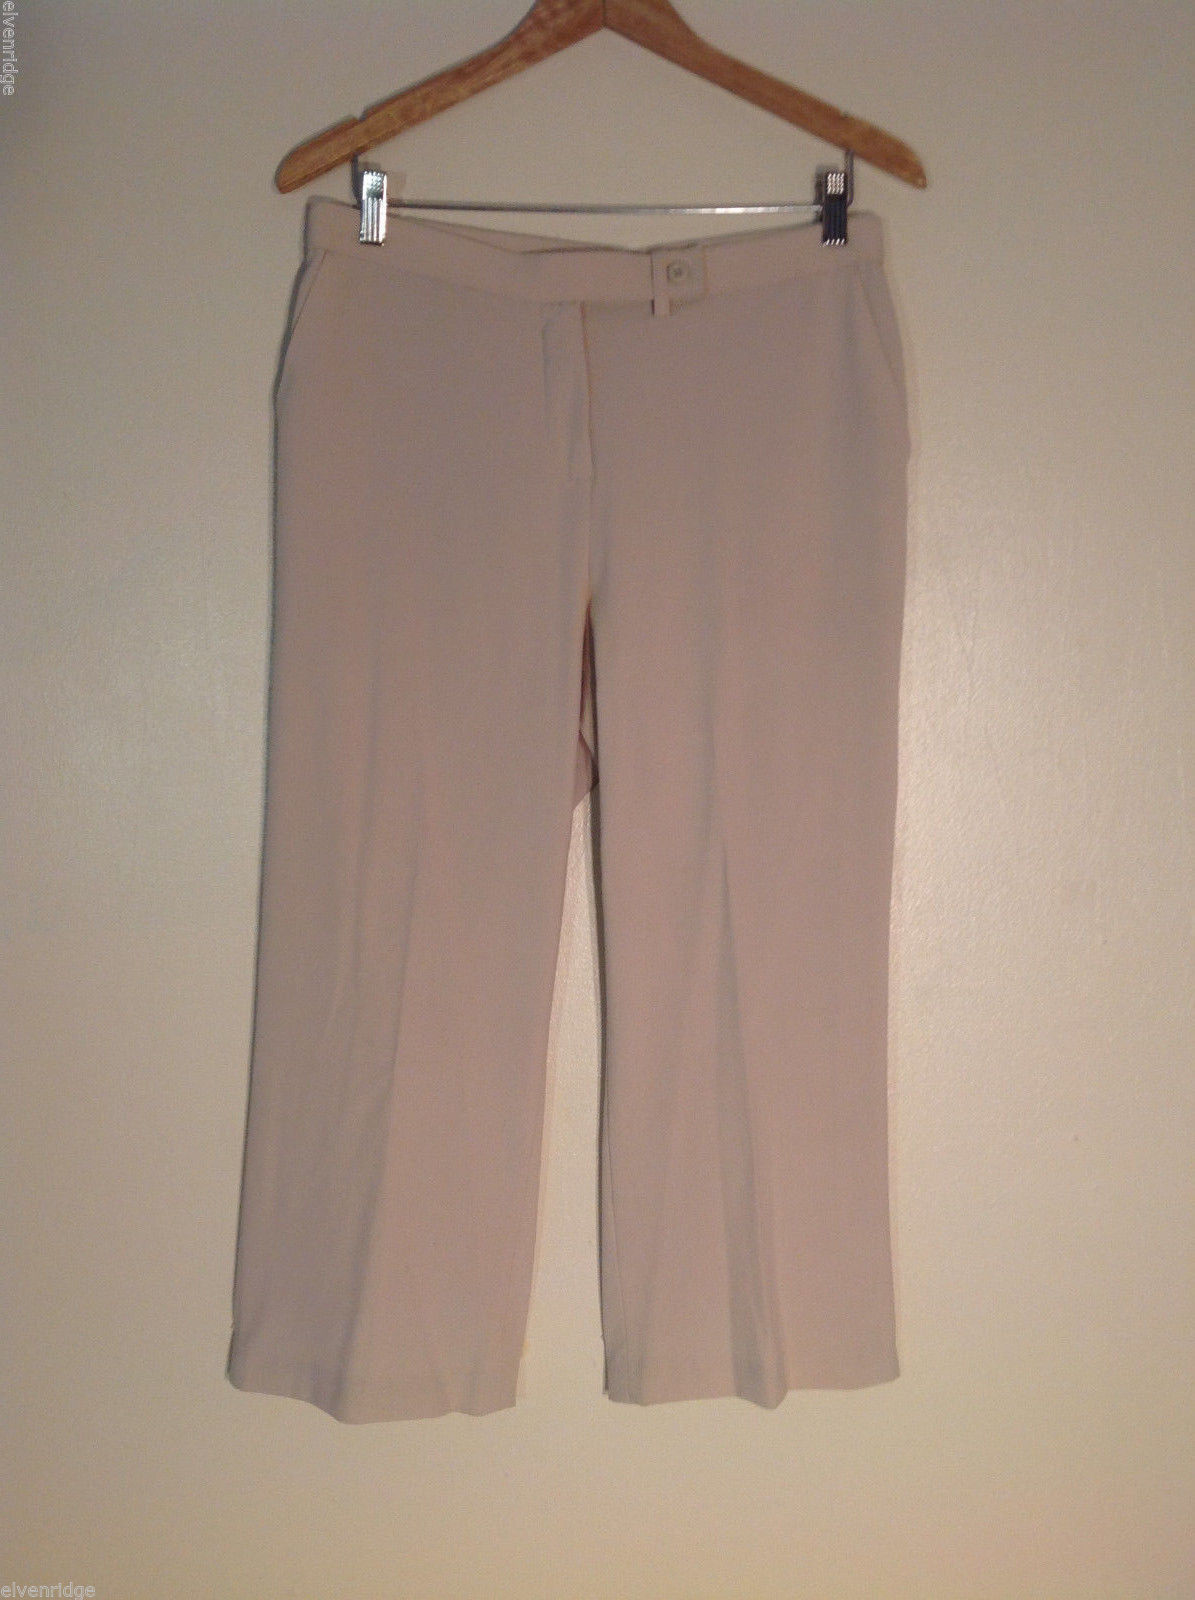 Coldwater Creek Women's Size 10 Cropped Pants Beige Flat Front Creased Legs